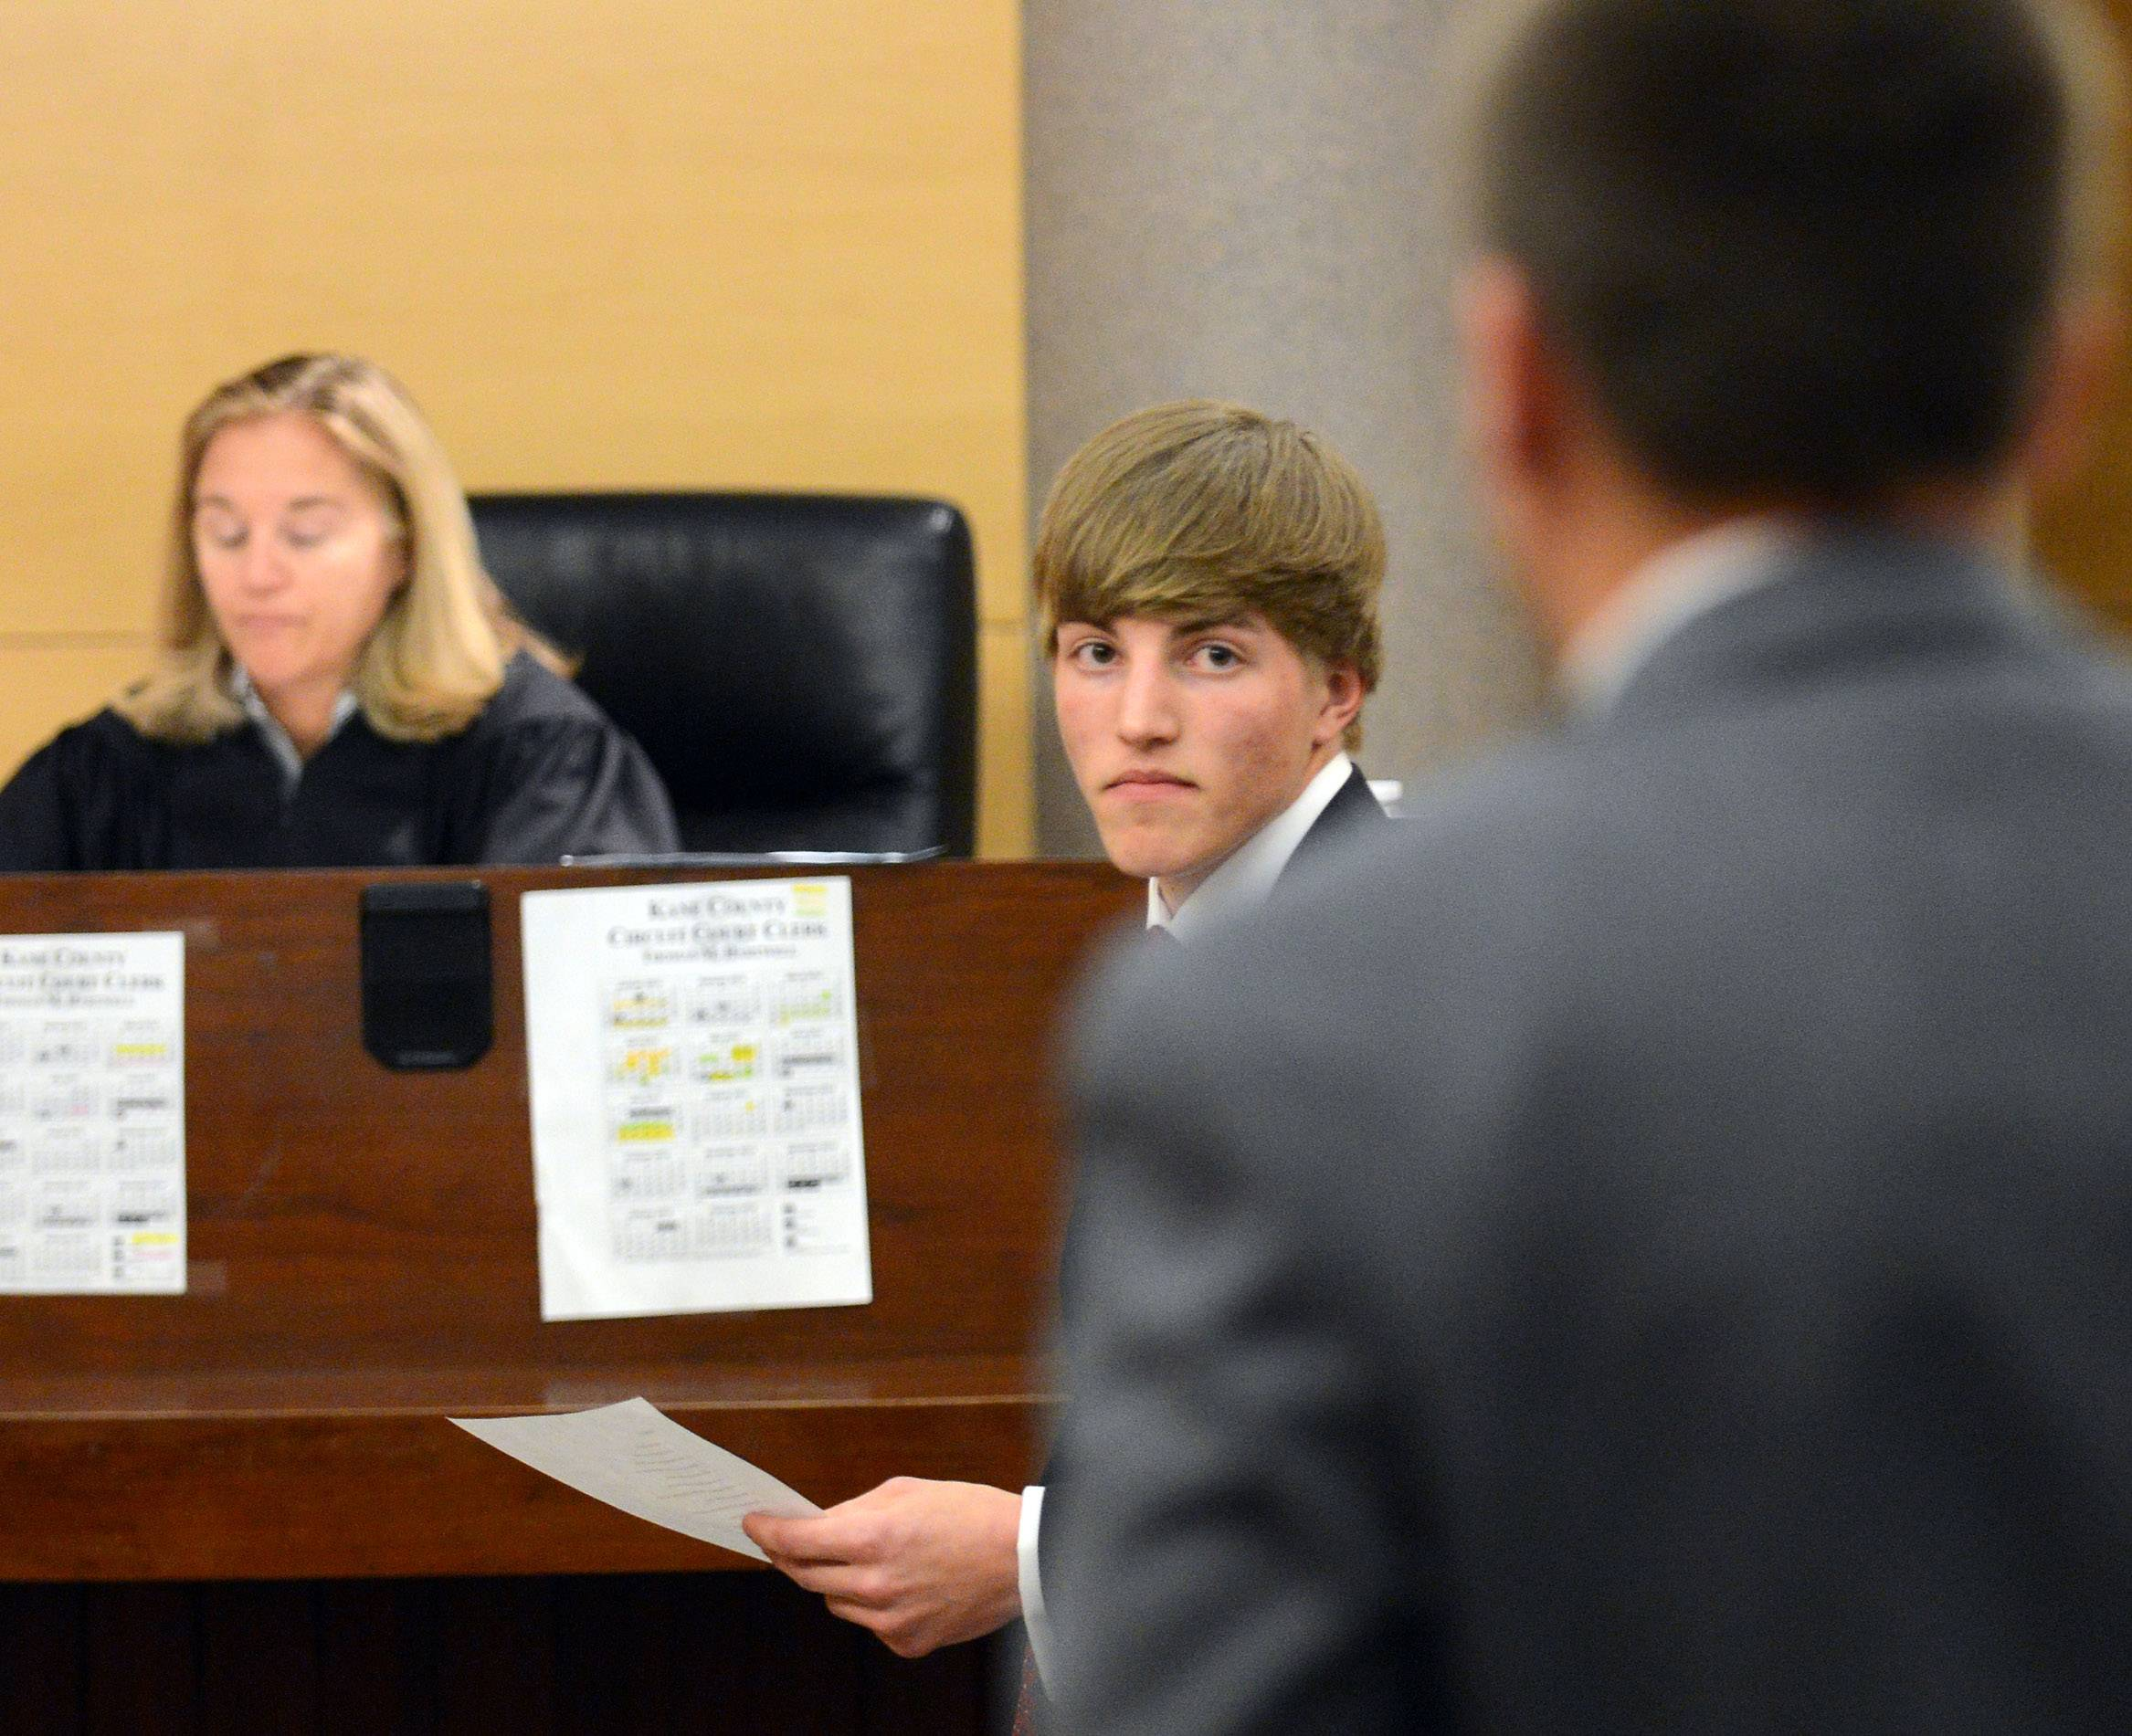 Batavia's Eric Phillips looks back as the prosecution objects to a question he posed to a witness during the Law Day Mock Trial Program Friday at the Kane County Courthouse in St. Charles.